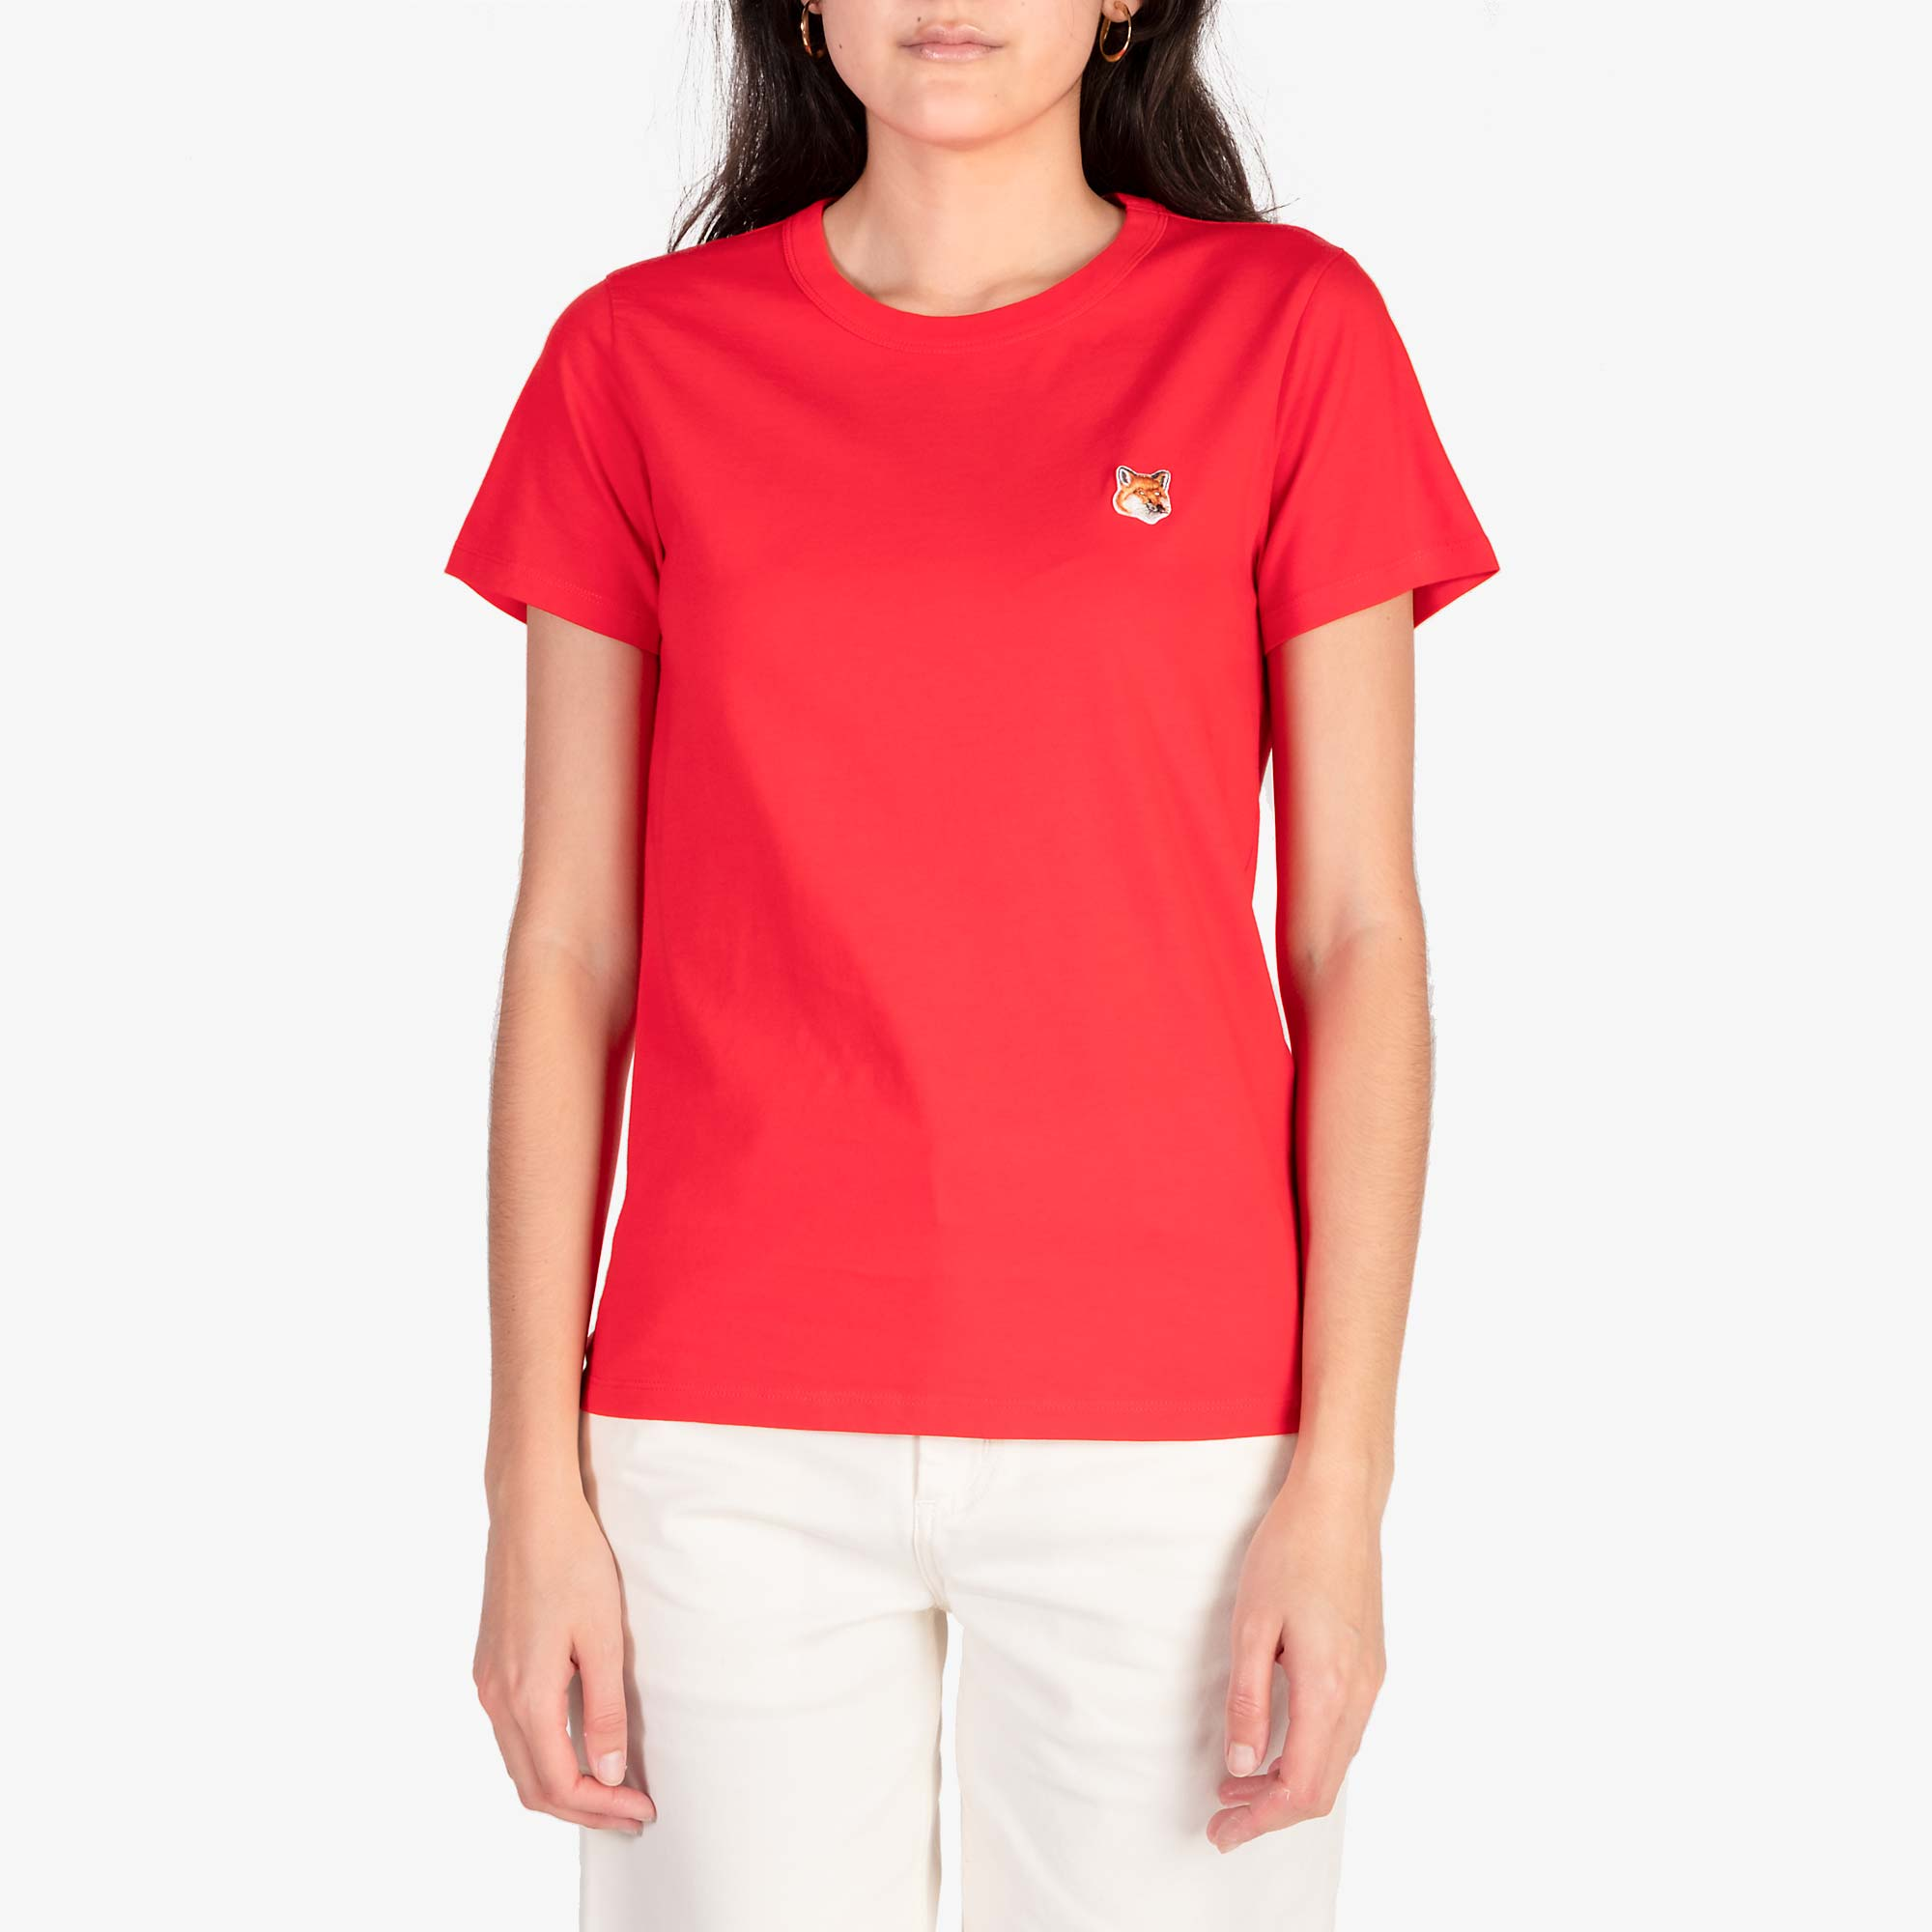 Maison Kitsune Women's Fox Head Patch Tee - Red 1